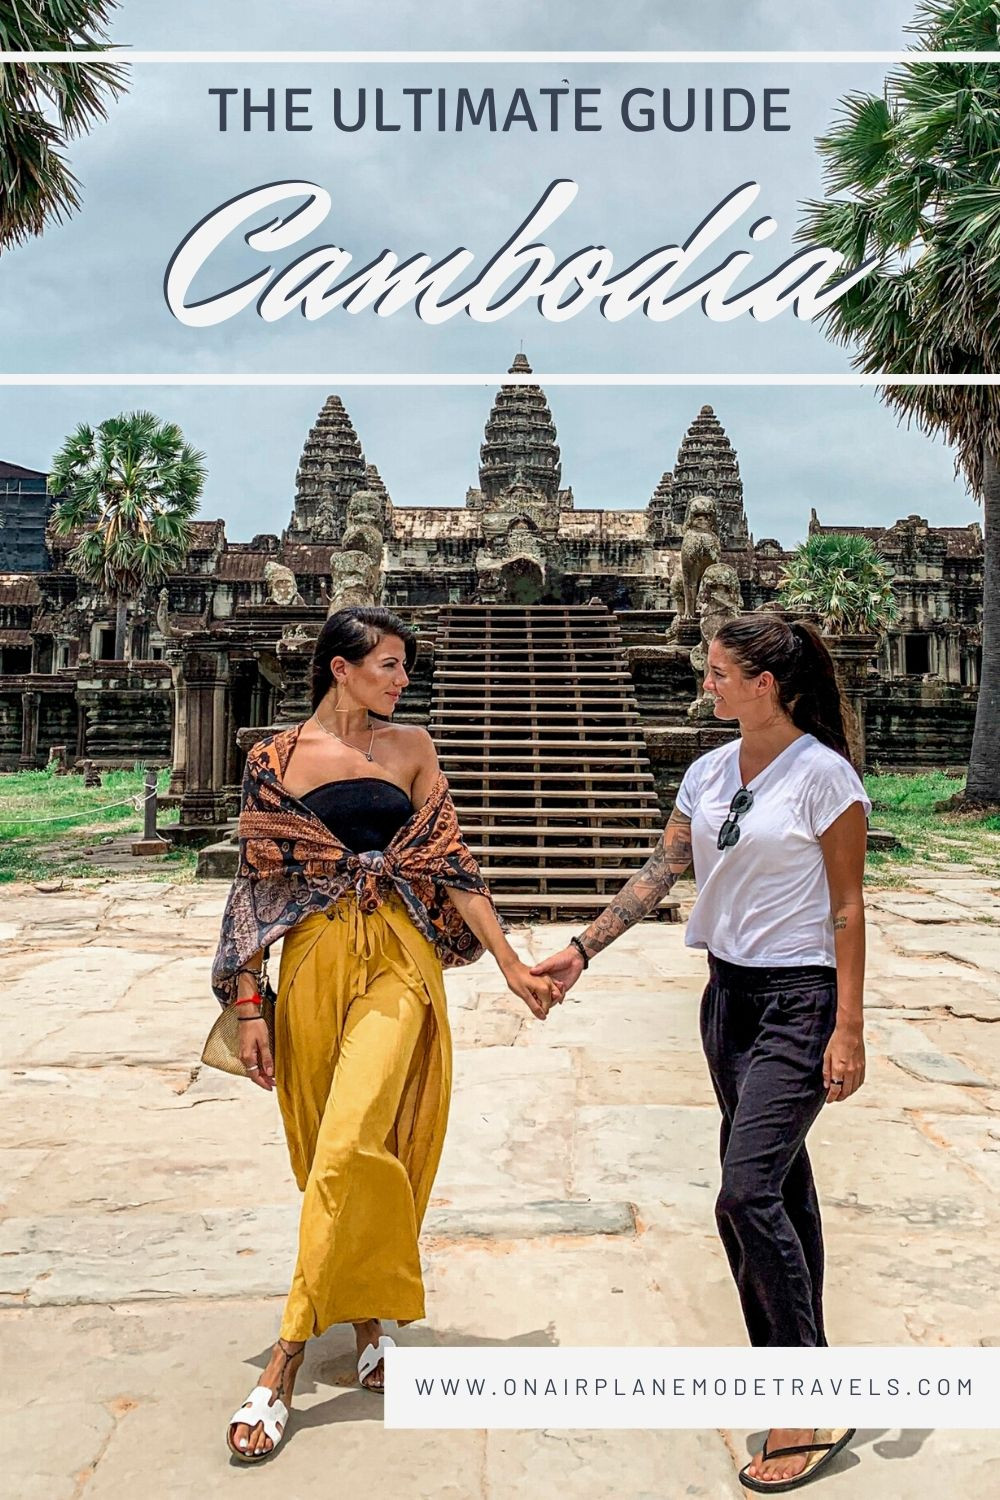 The Ultimate Guide to Cambodia | On Airplane Mode